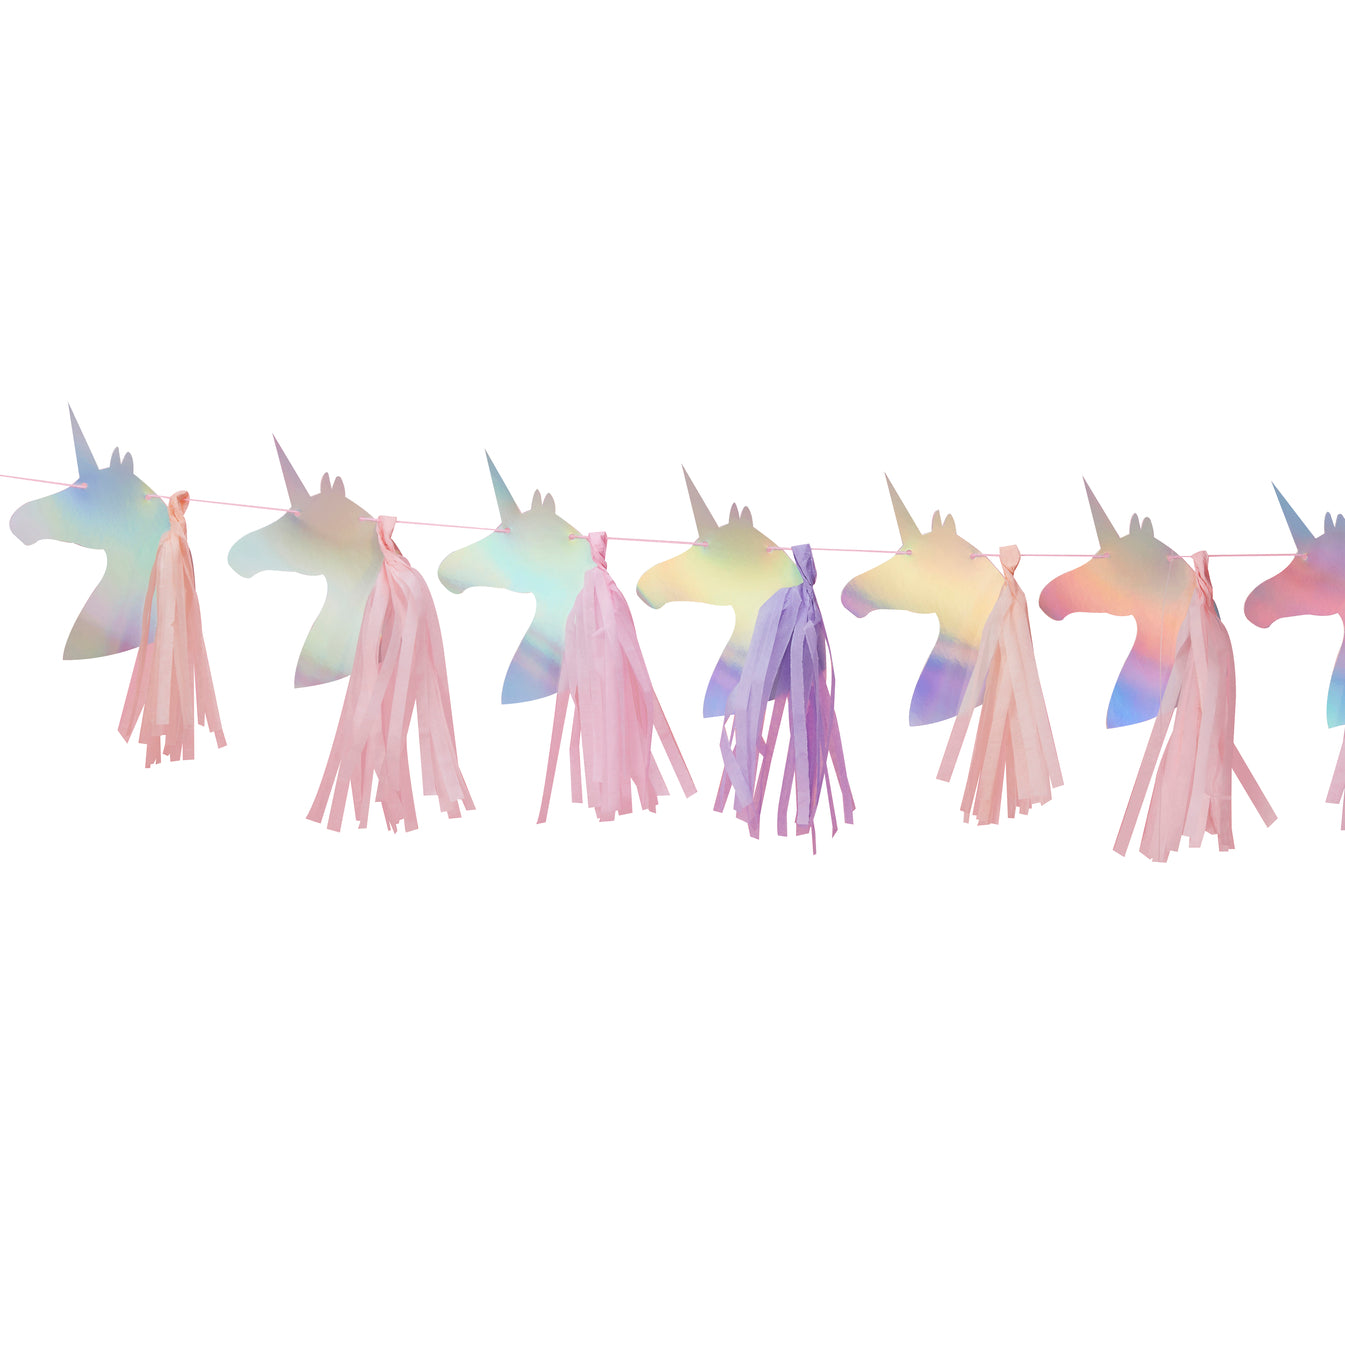 Iridescent Foiled Tassel Unicorn Bunting Garland